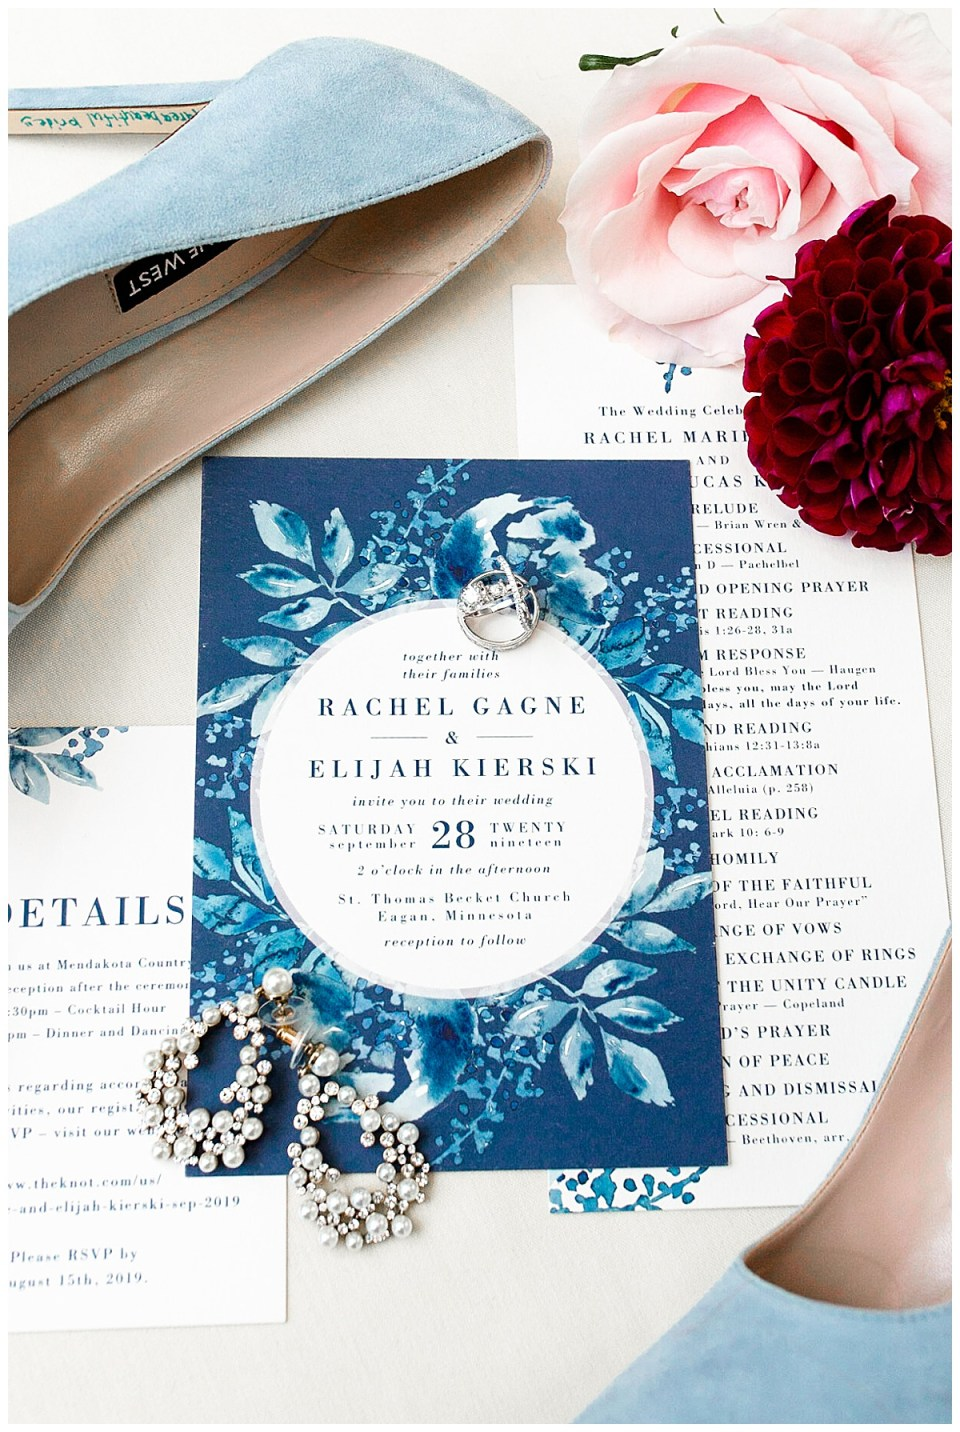 Invitation suite design at Mendakota Country Club in Eagan, MN with navy themed fall catholic wedding